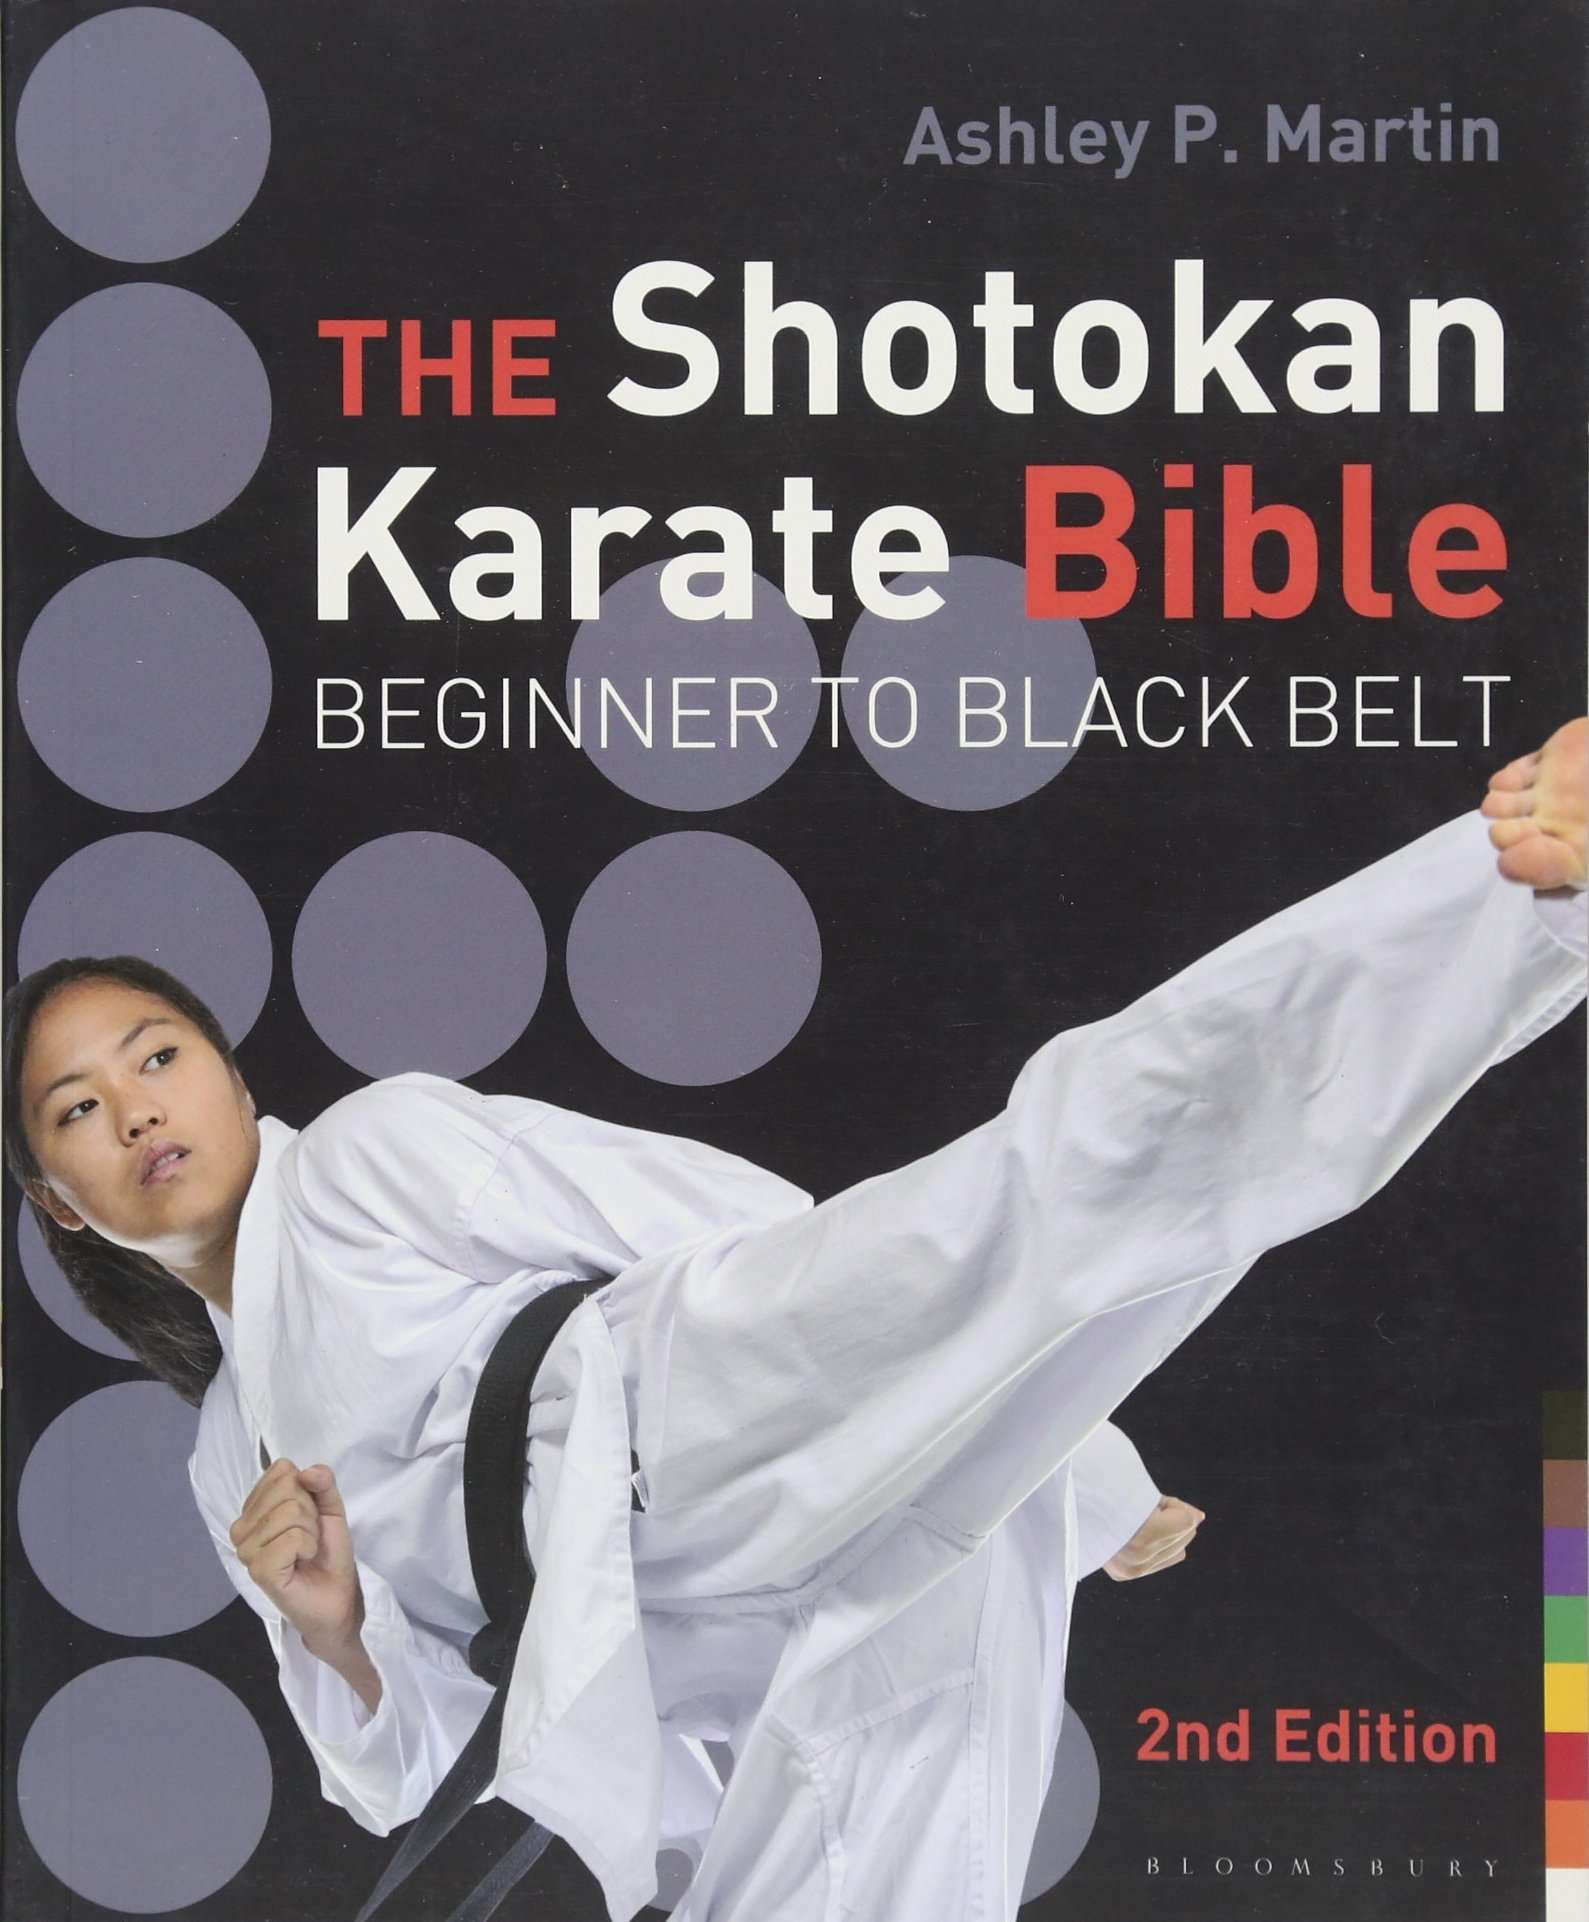 Download The Shotokan Karate Bible 2nd edition: Beginner to Black Belt pdf